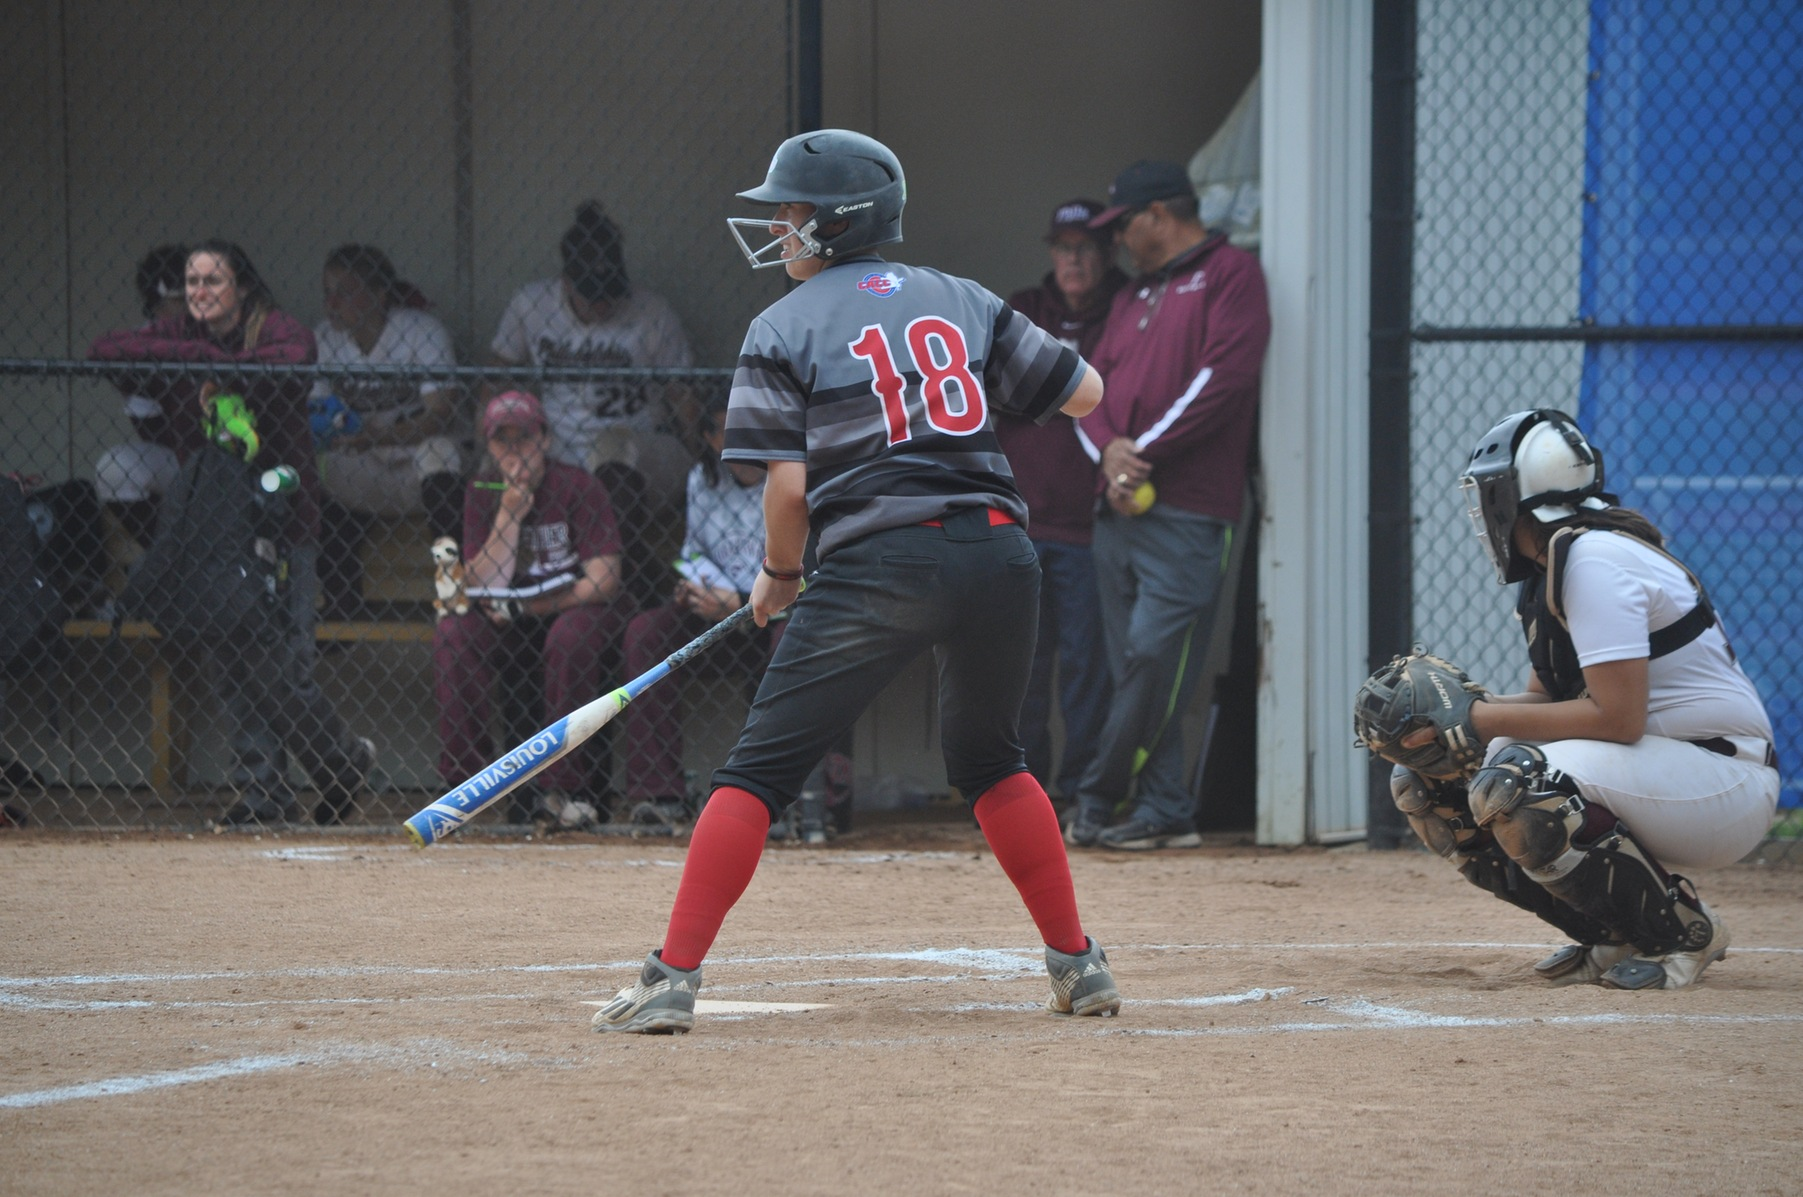 Lady Chargers opened CACC play with a split with the University of the Sciences.